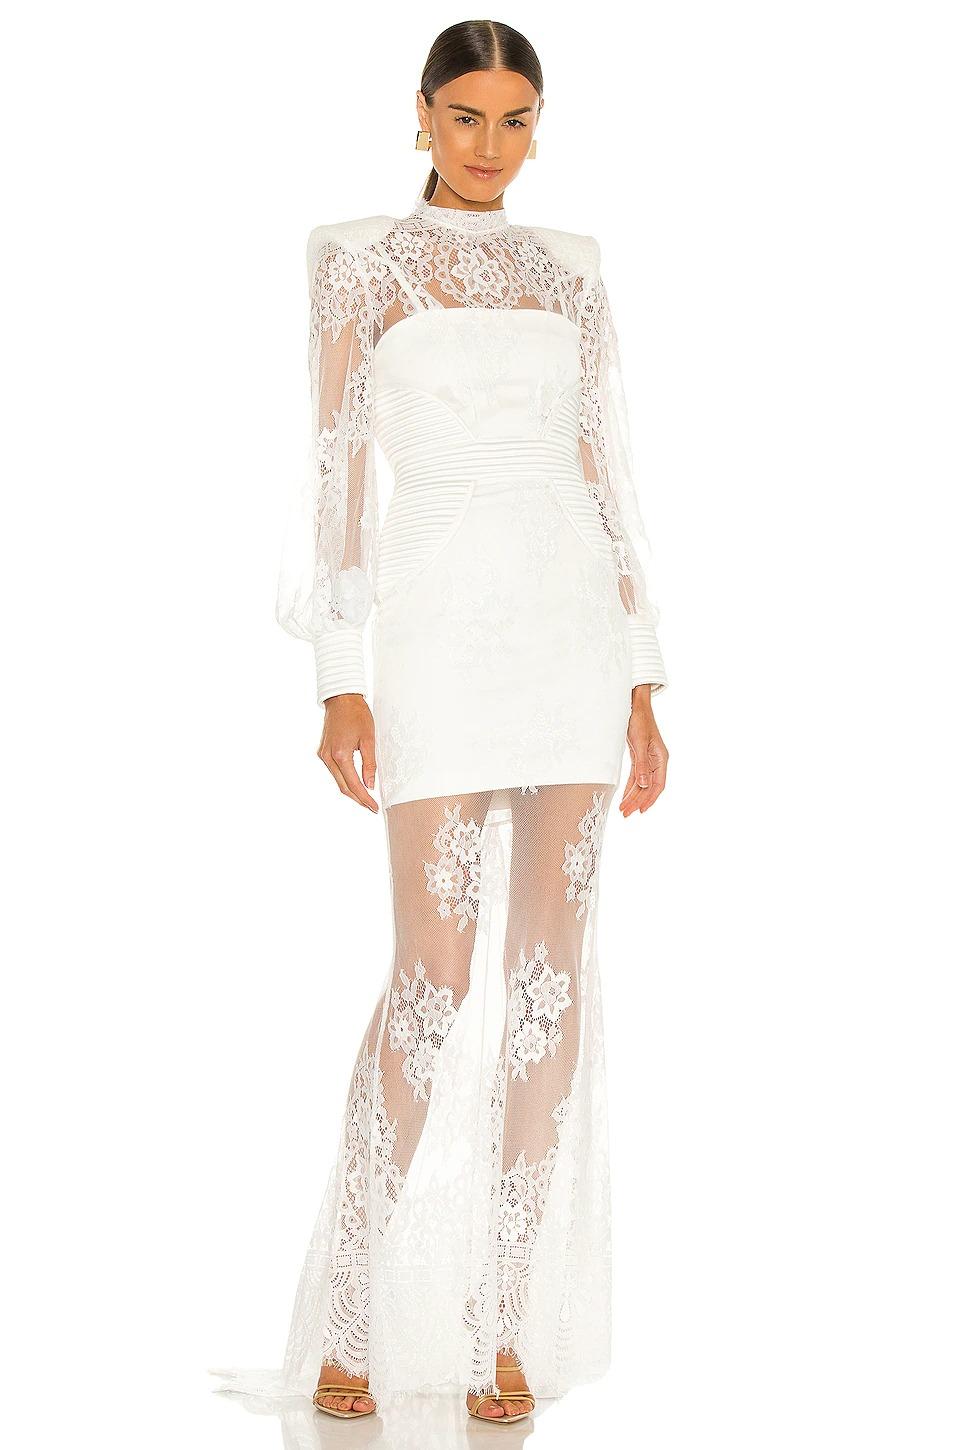 lace white dress for wedding reception